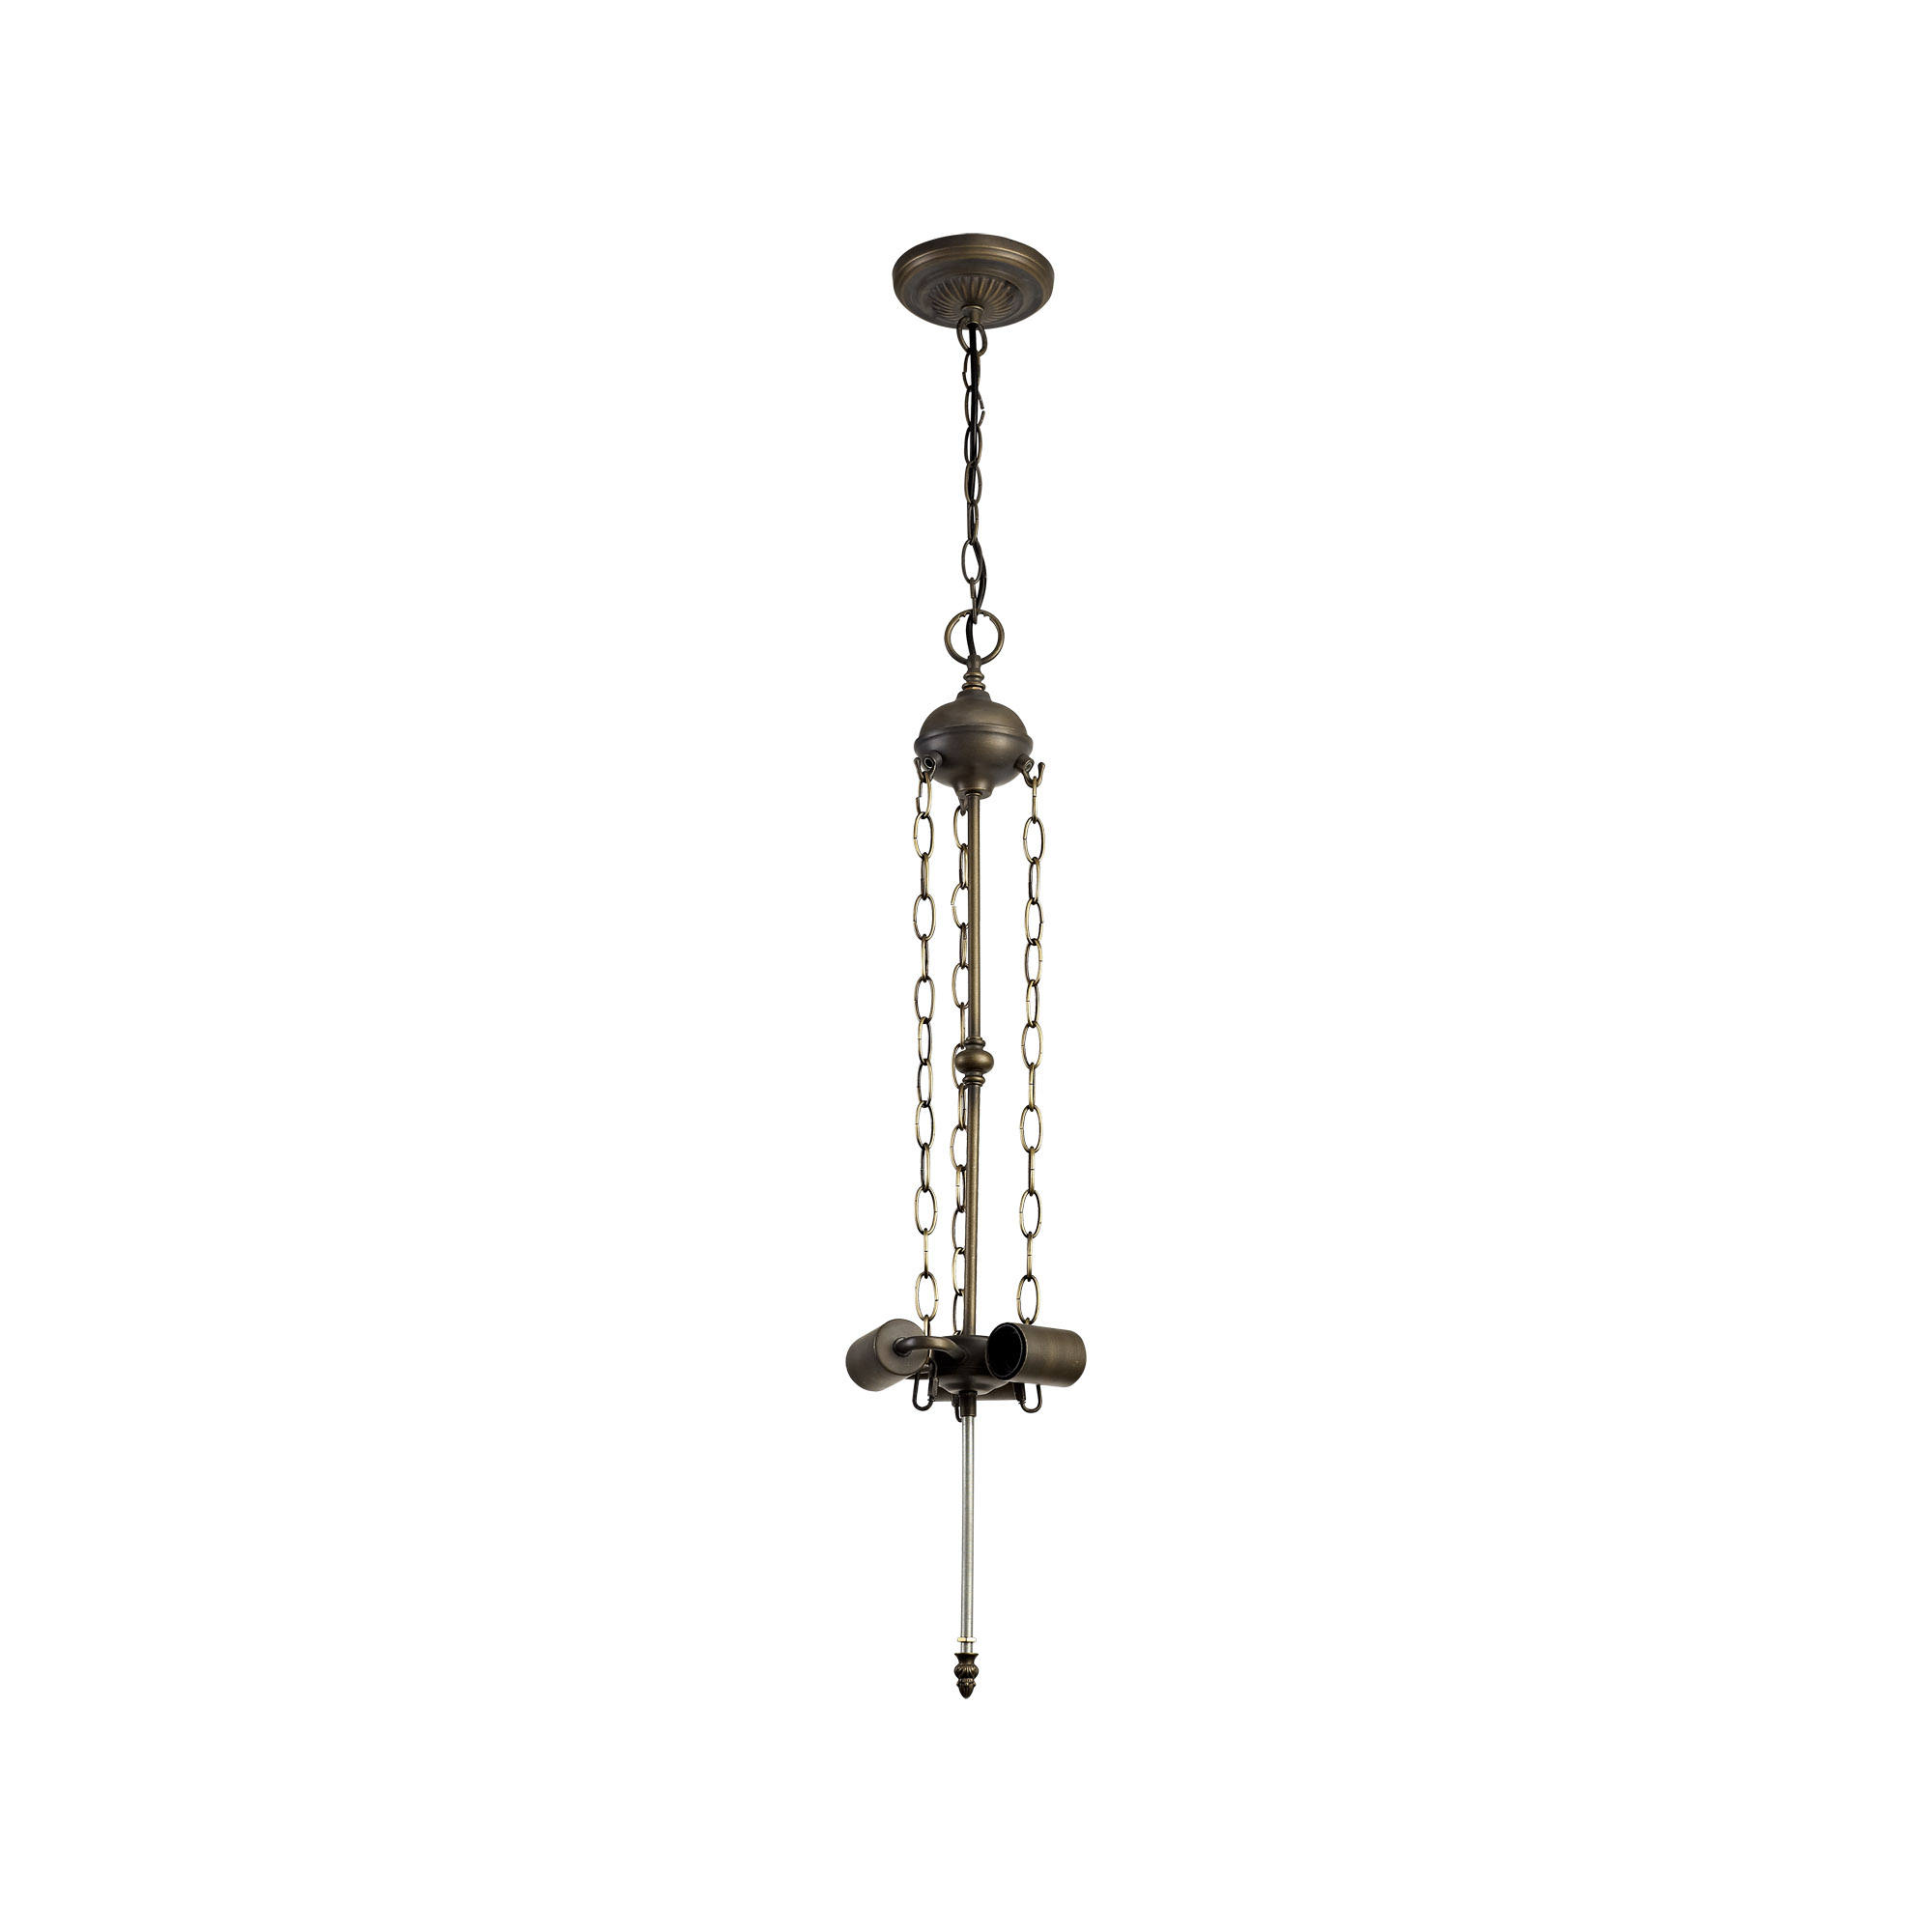 3 Light Uplighter Pendant E27 With 40cm Tiffany Shade, Blue/Clear Crystal/Aged Antique Brass